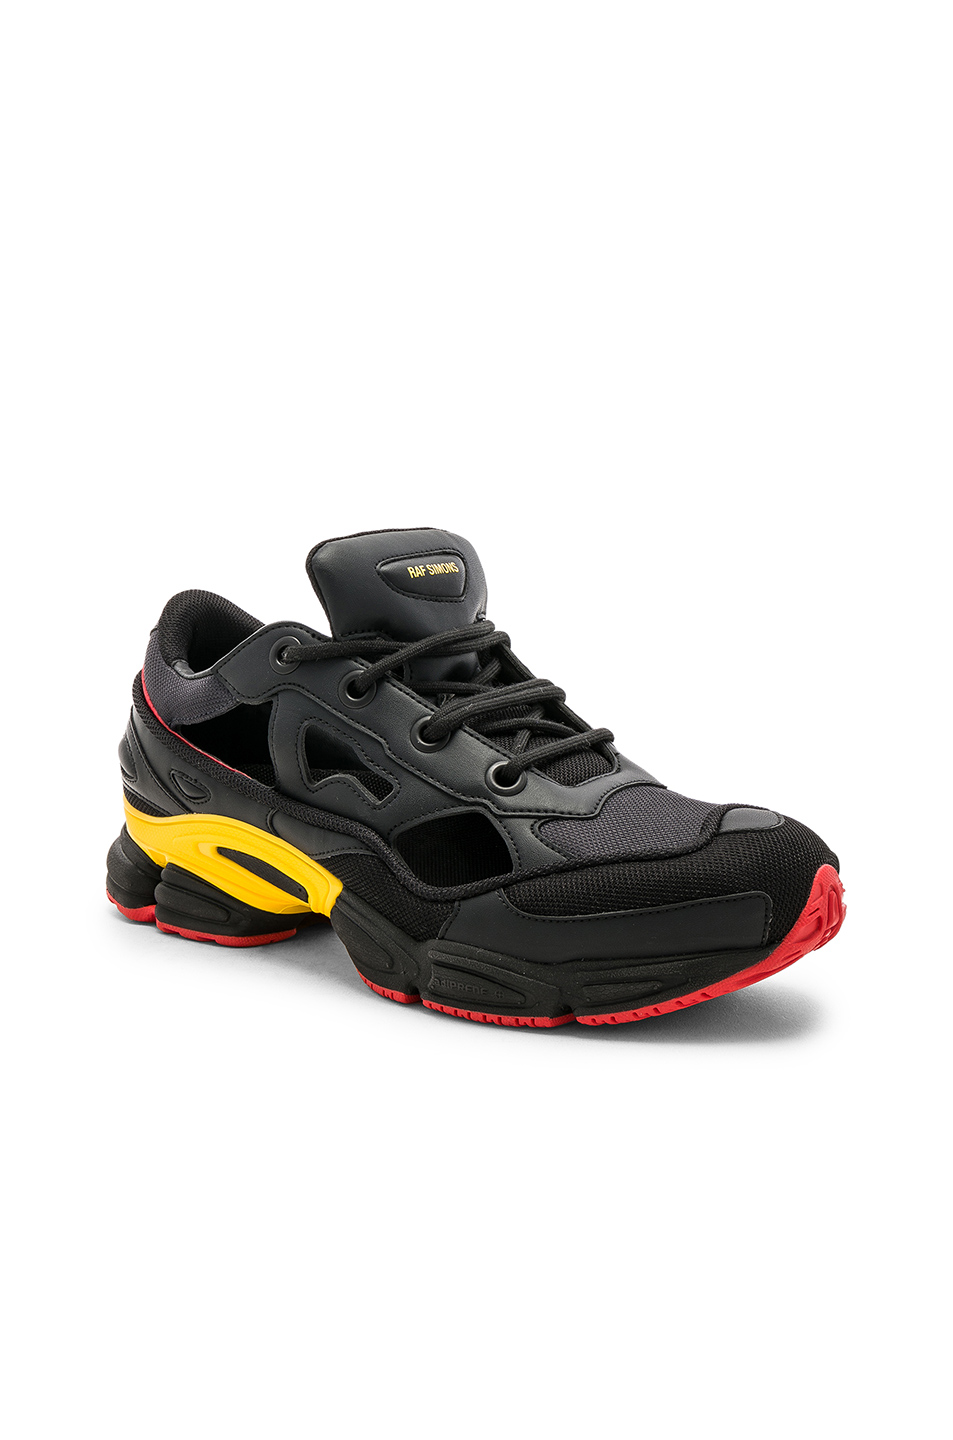 best service 7f2c5 45f7e ... adidas by Raf Simons Belgium National Day Replicant Ozweego ...